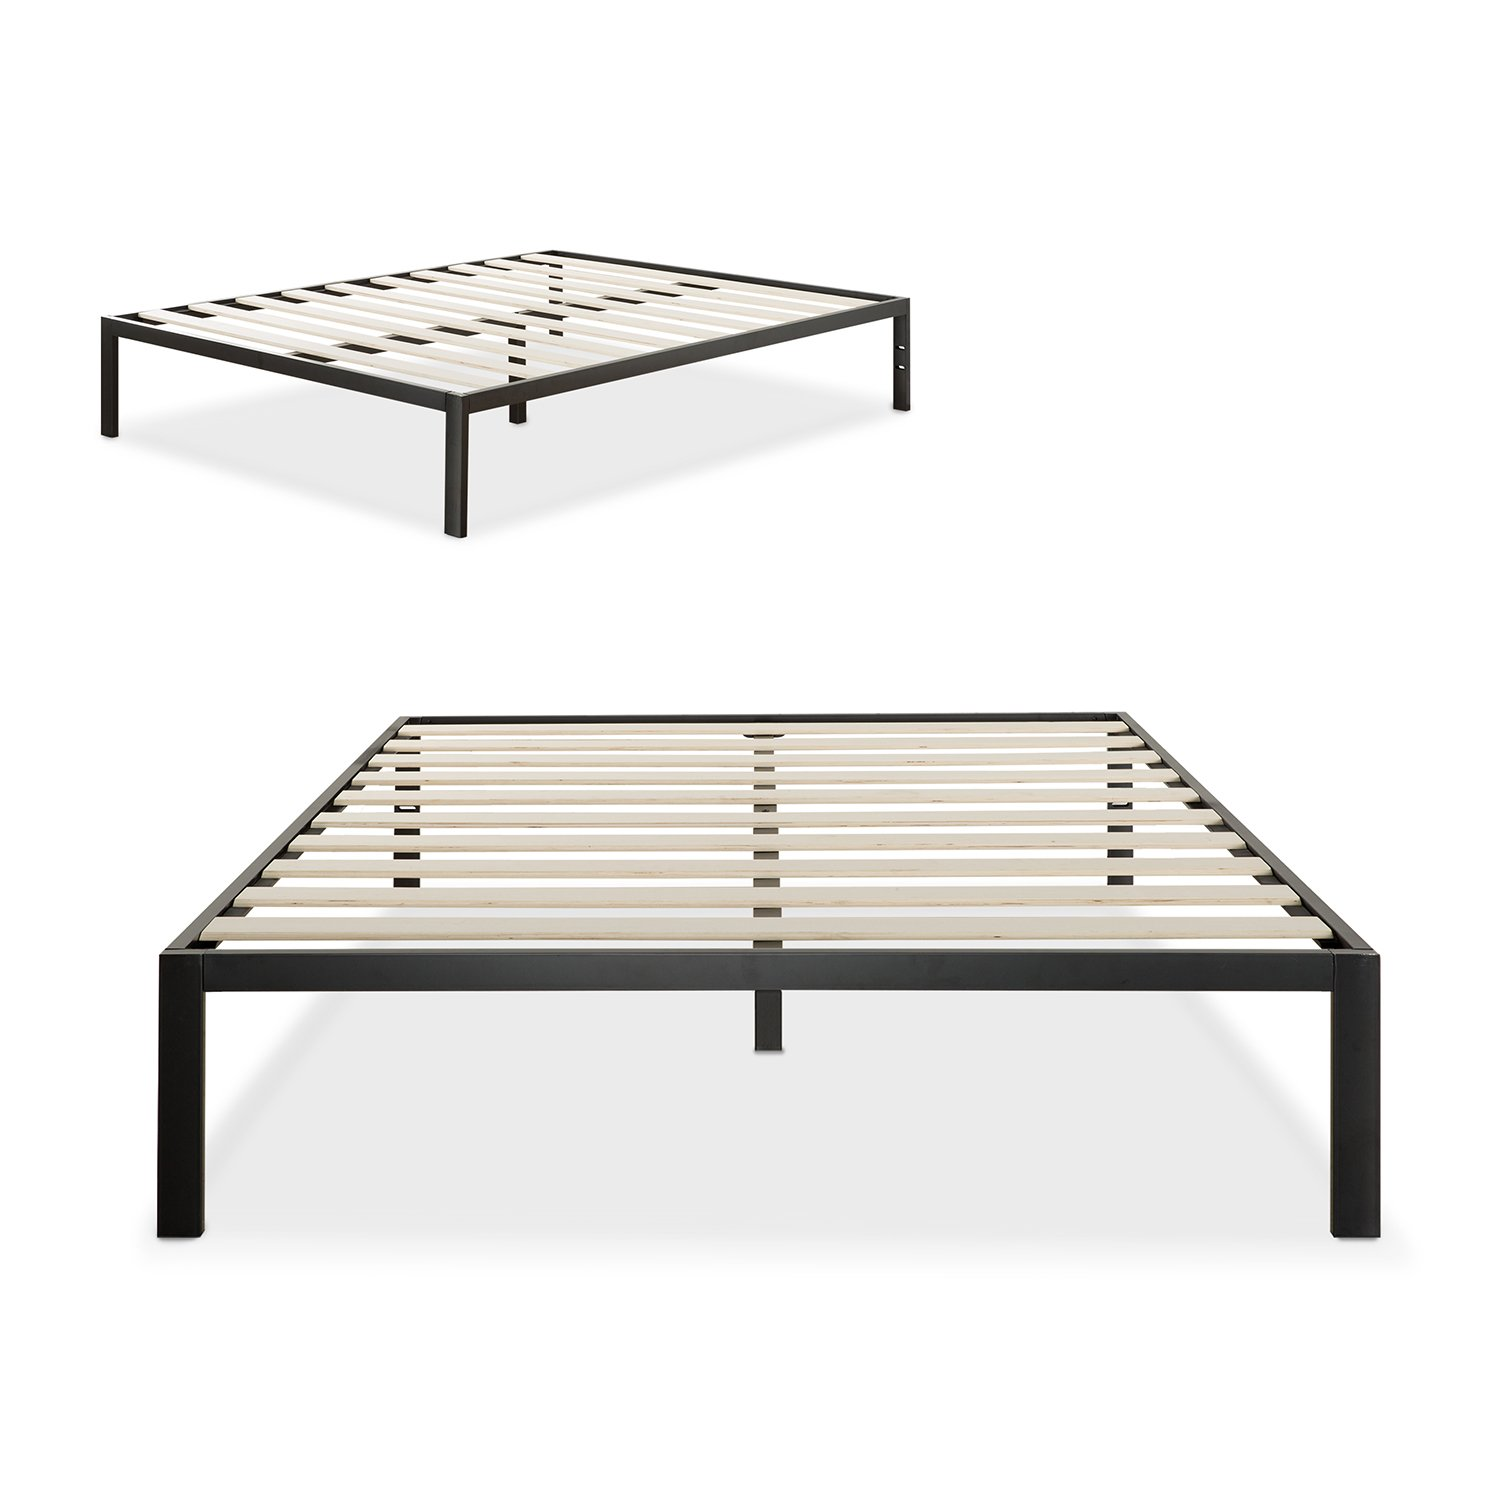 zinus modern studio 14 inch platform 1500 metal bed frame mattress foundation no boxspring needed wooden slat support black queen - Bed Frames Queen